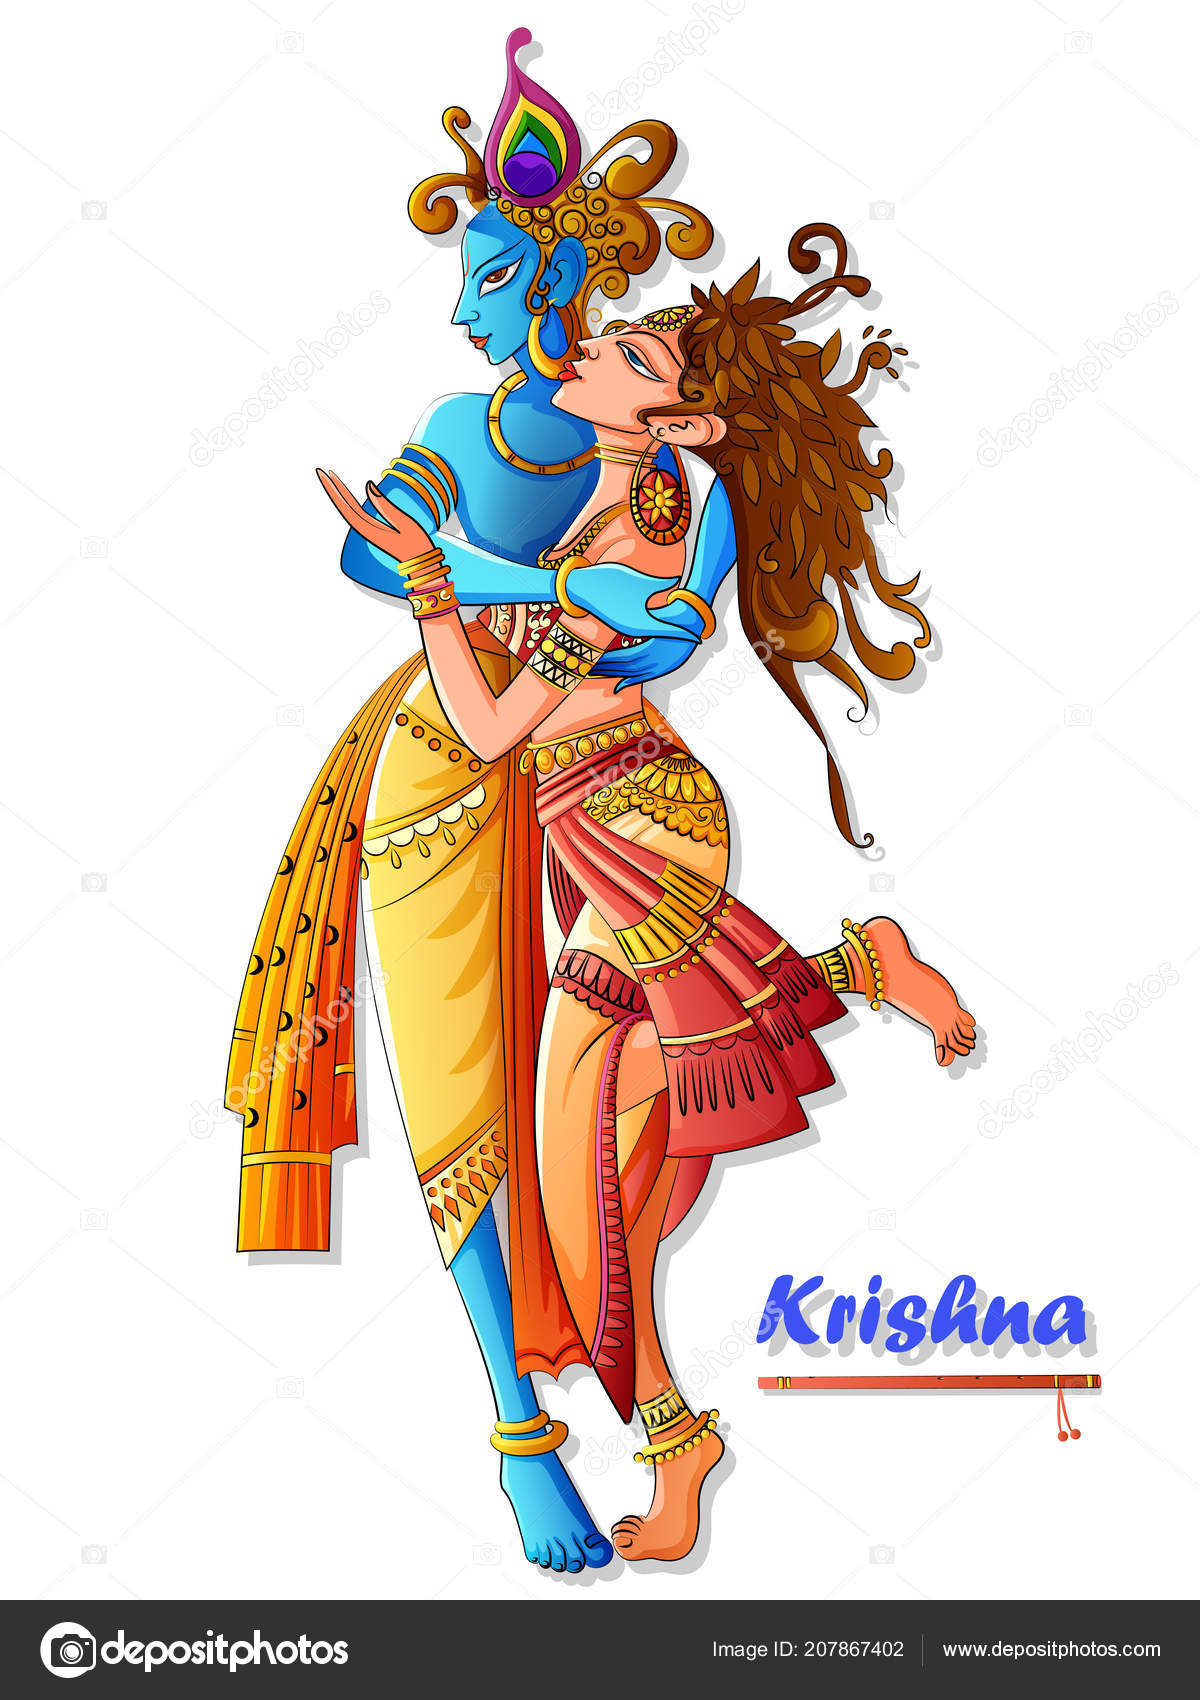 depositphotos 207867402 stock illustration lord krishna playing bansuri flute